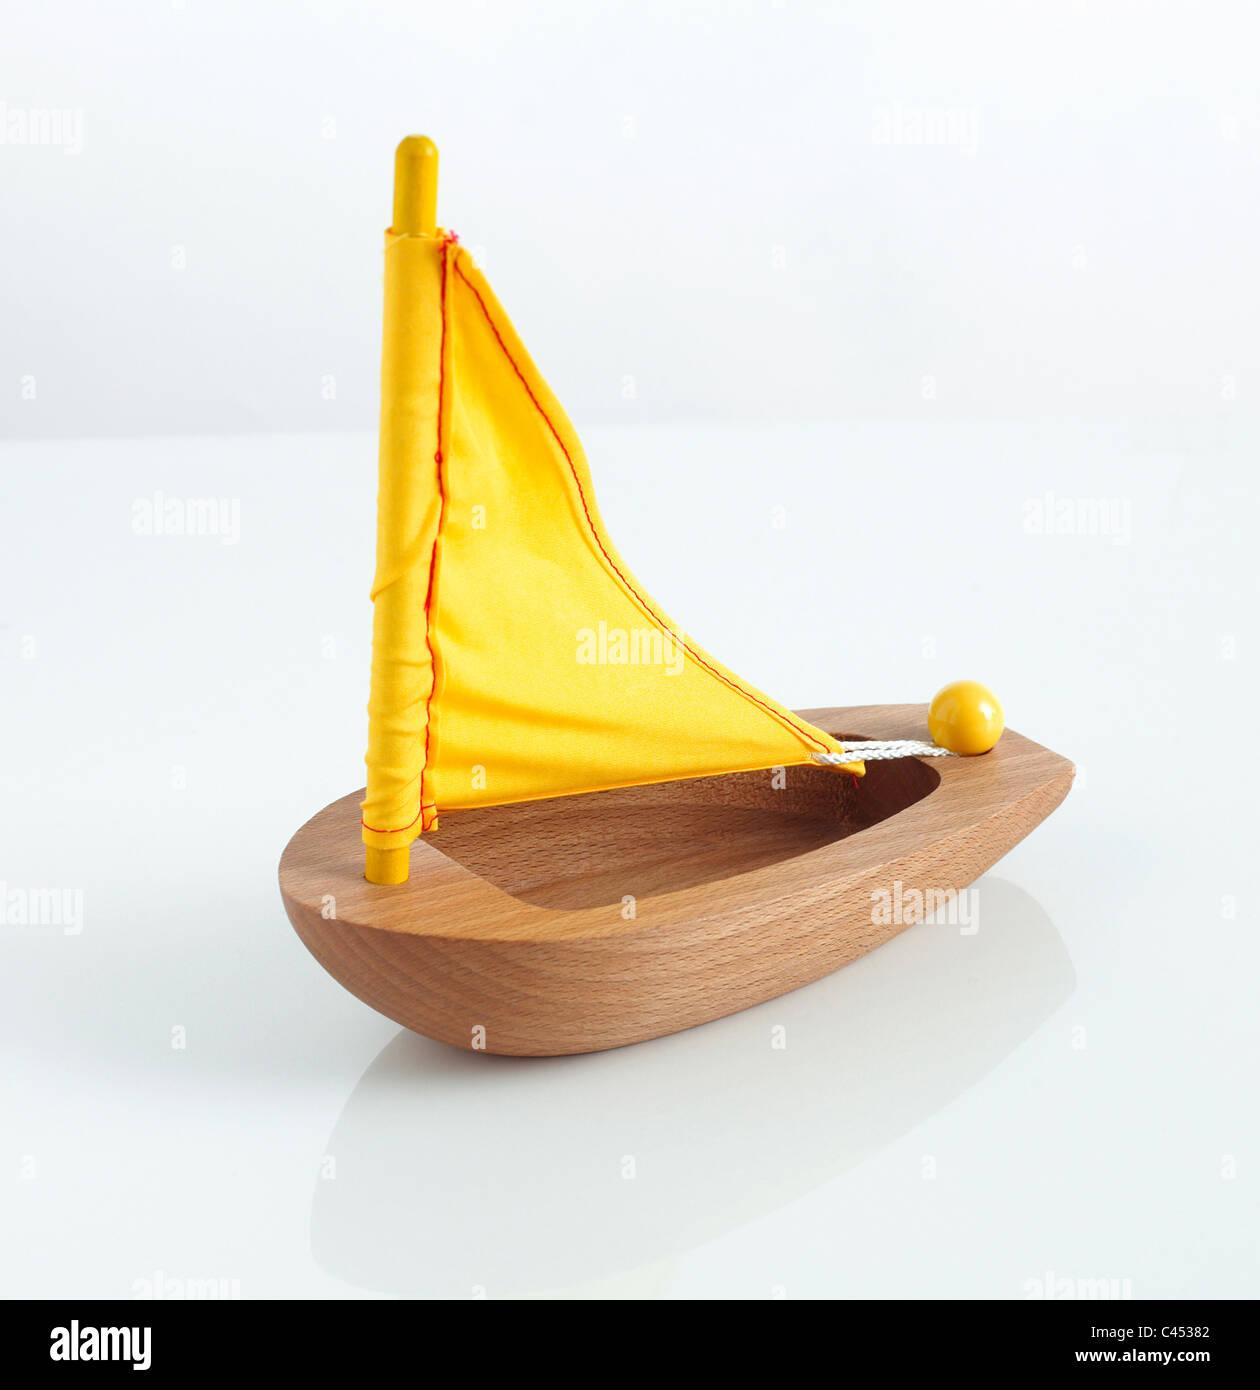 Toy boat with yellow sail, close-up - Stock Image